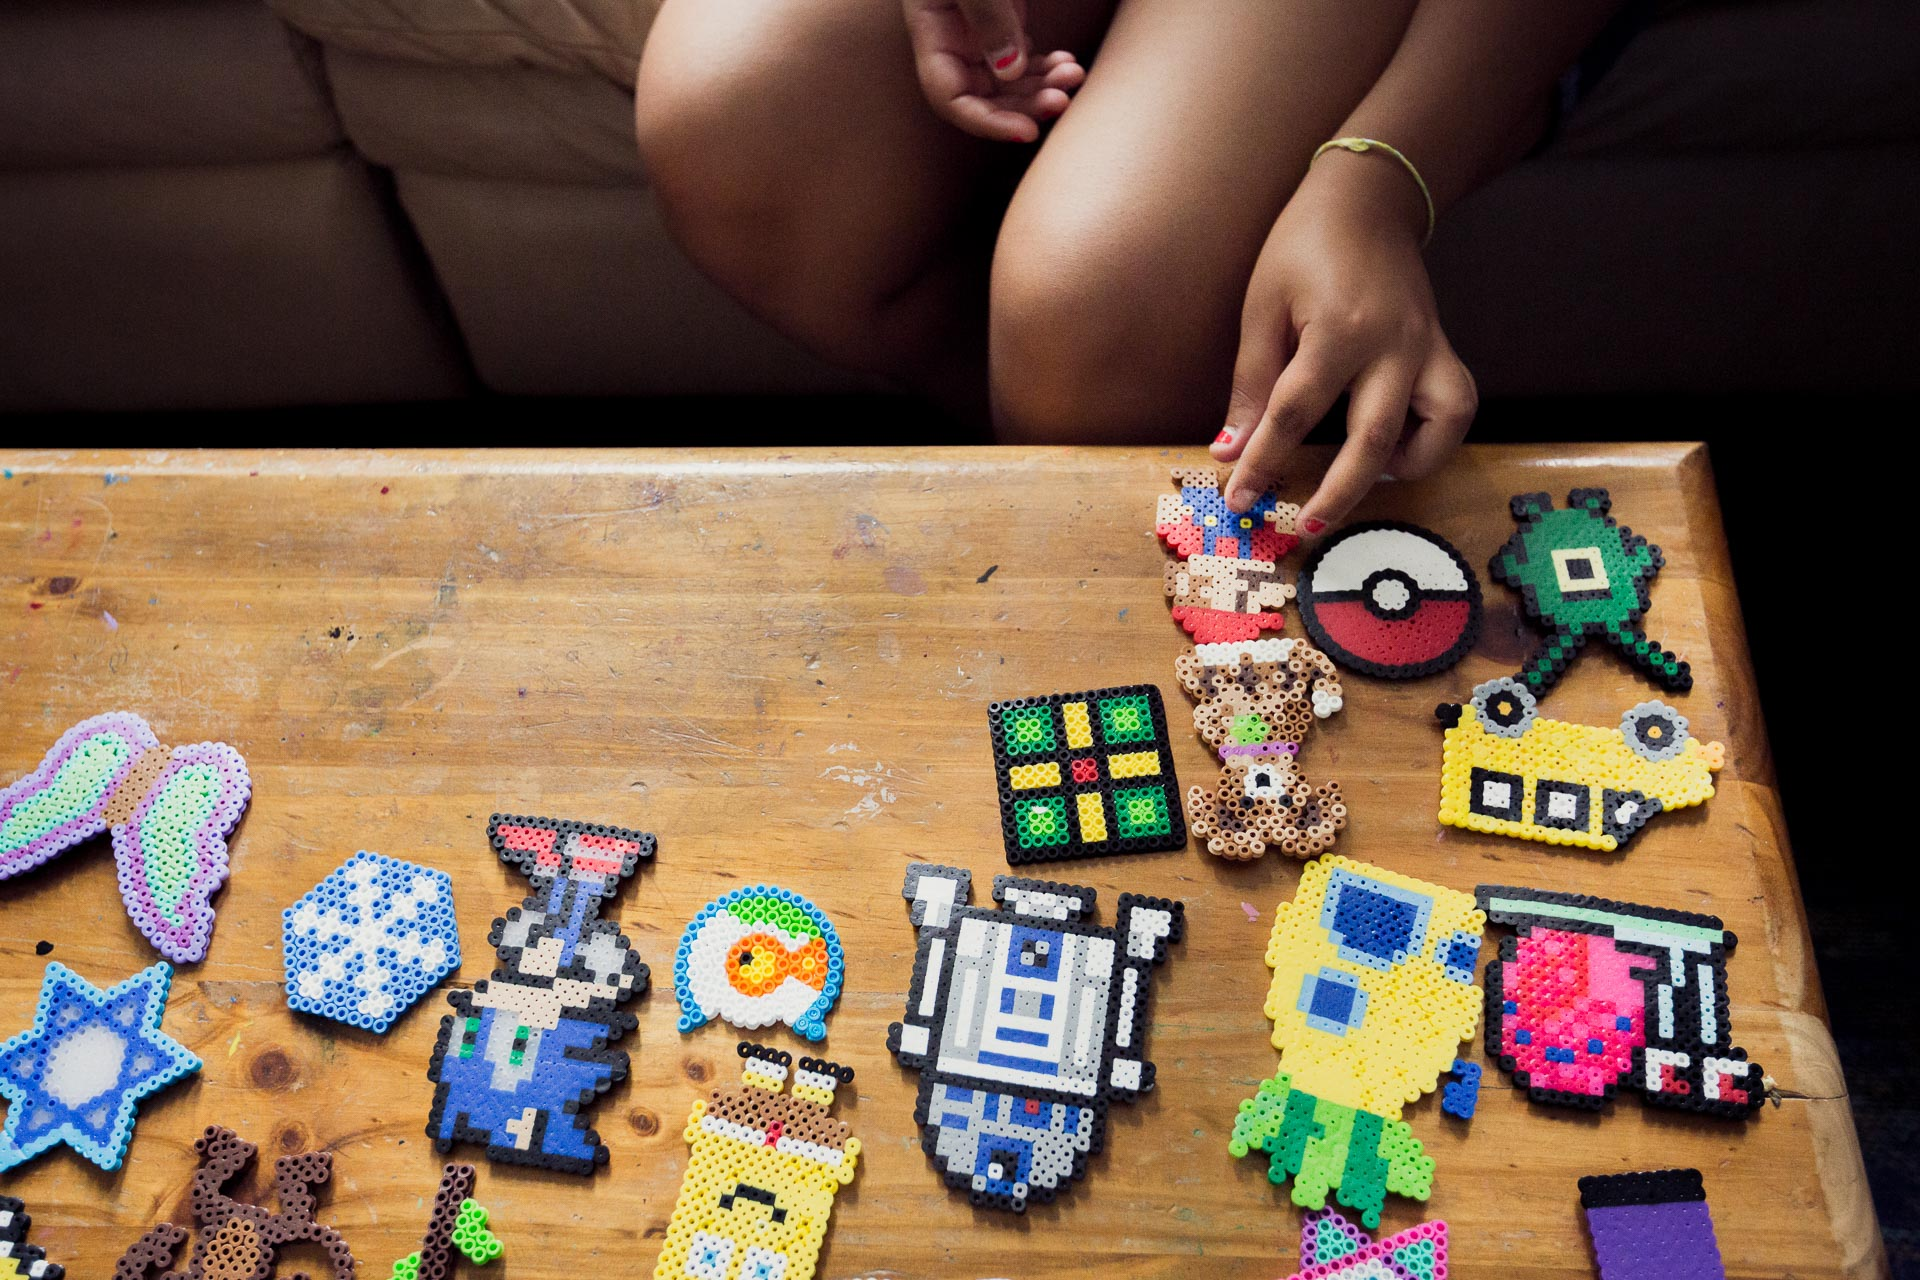 Veronica adjusts her perler bead collection